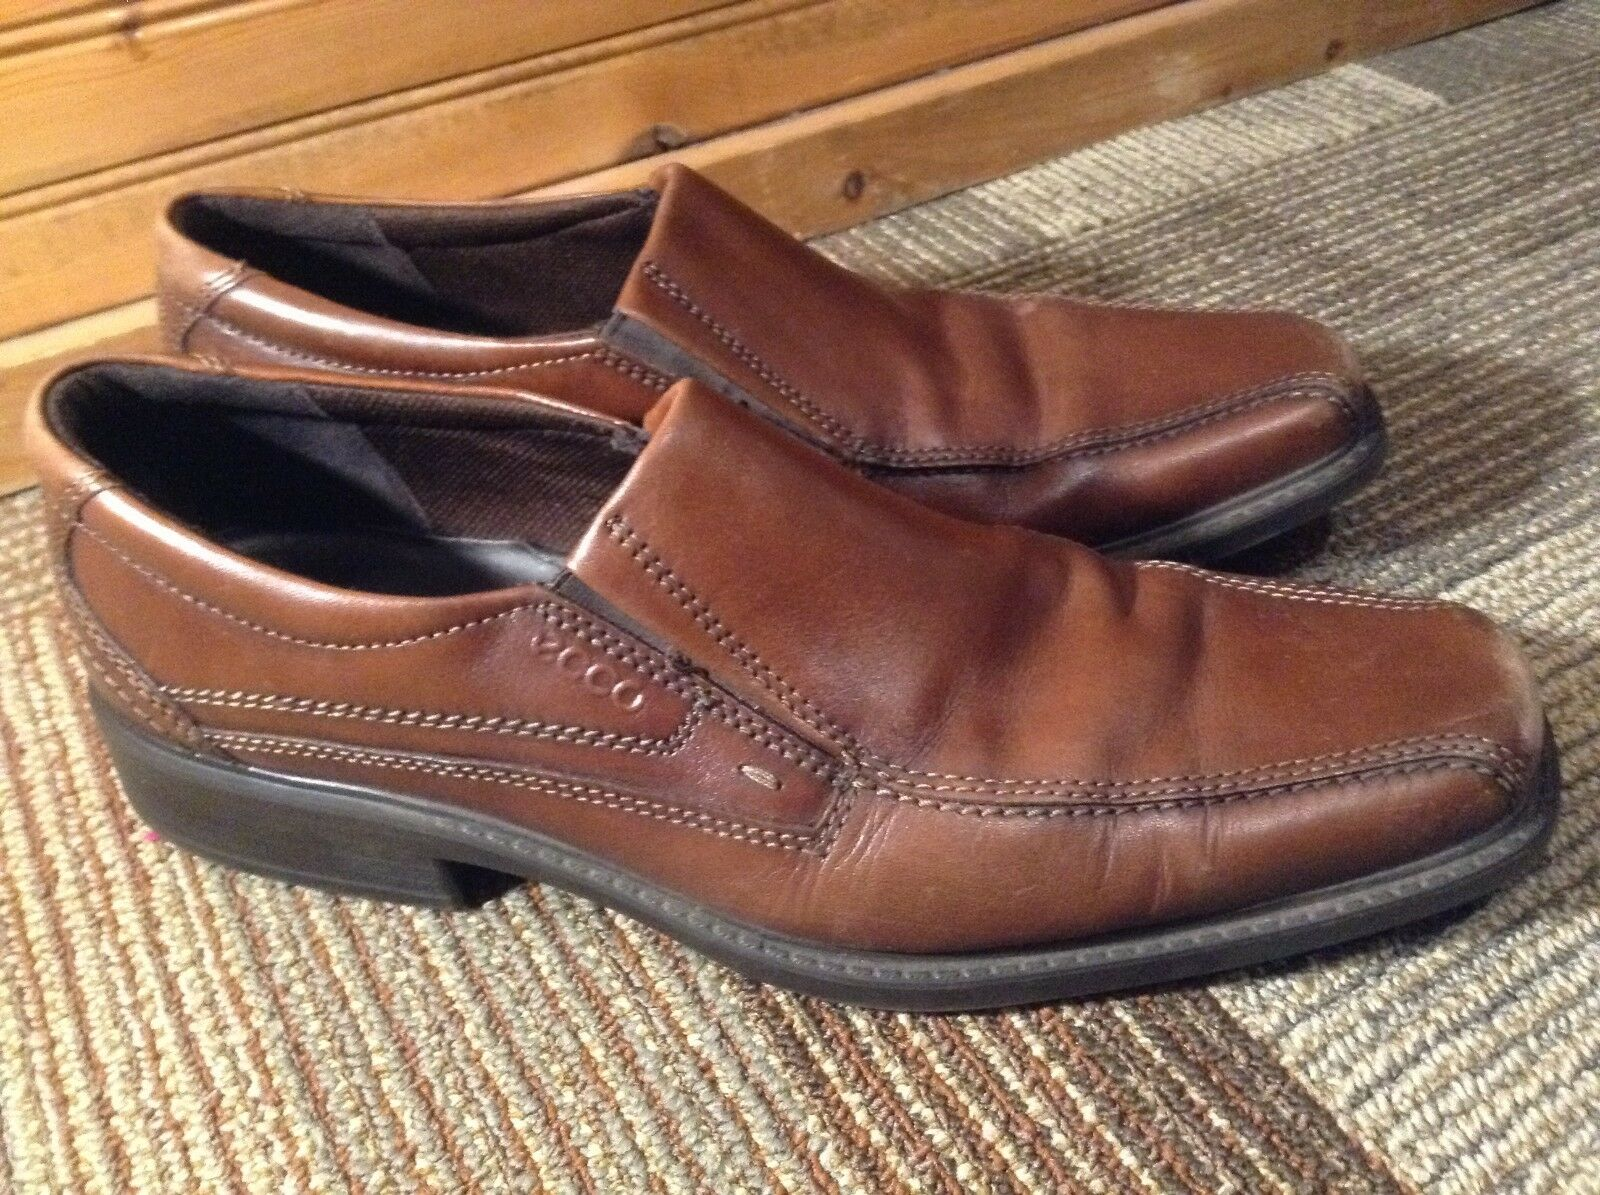 ECCO Men's Brown Leather Slip On shoes Size US 12- 12.5 Euro 46